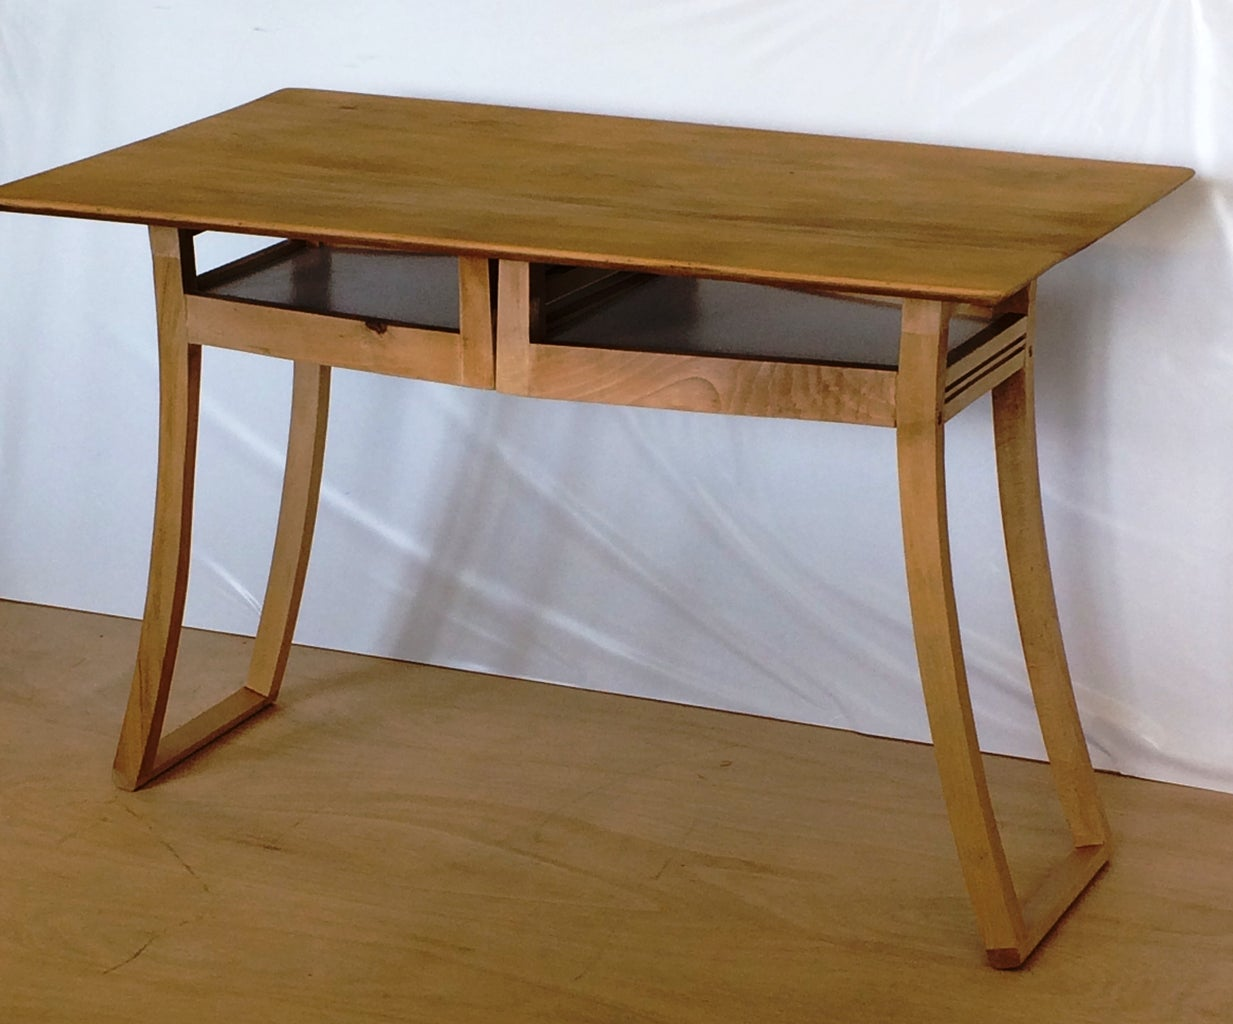 From Dining Chair to Table